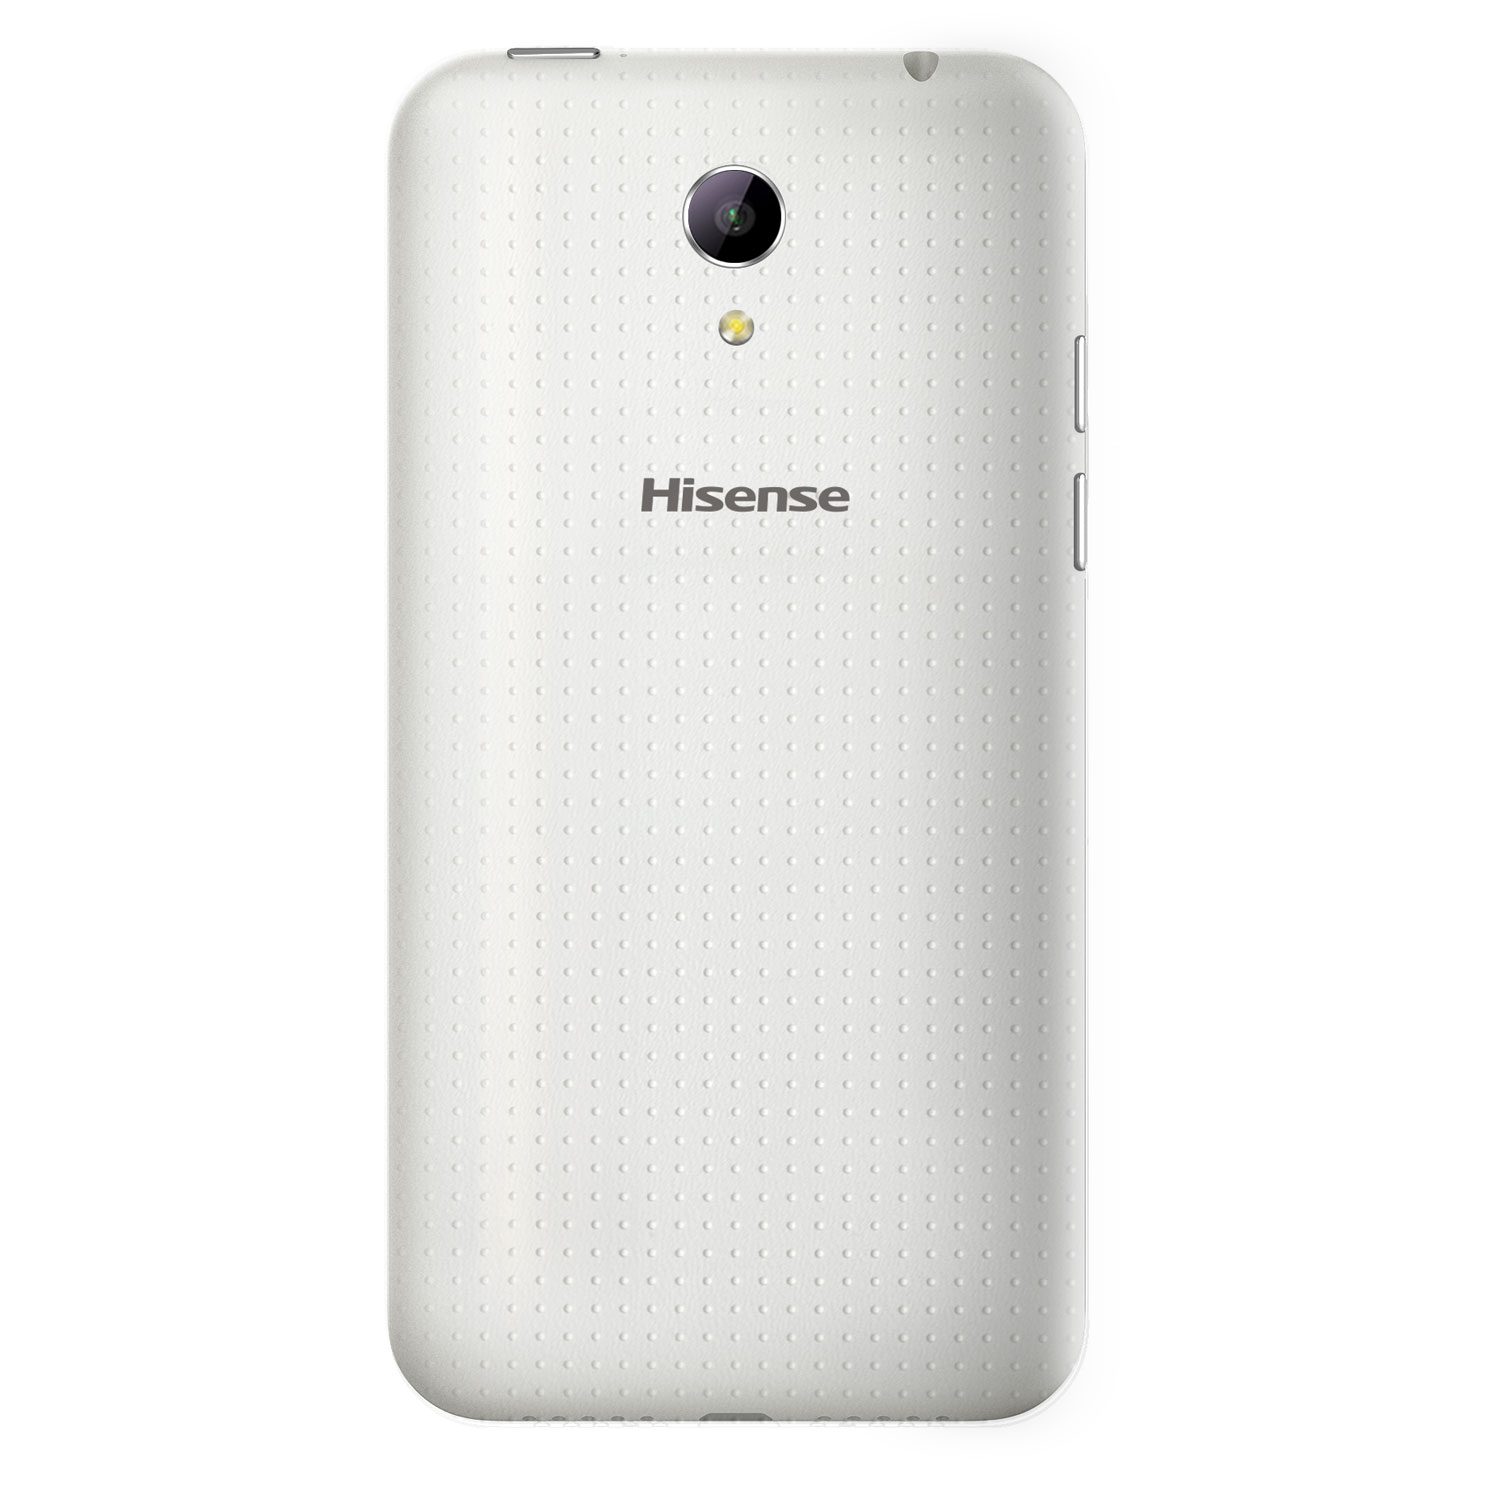 hisense d2 blanc mobile smartphone hisense sur. Black Bedroom Furniture Sets. Home Design Ideas